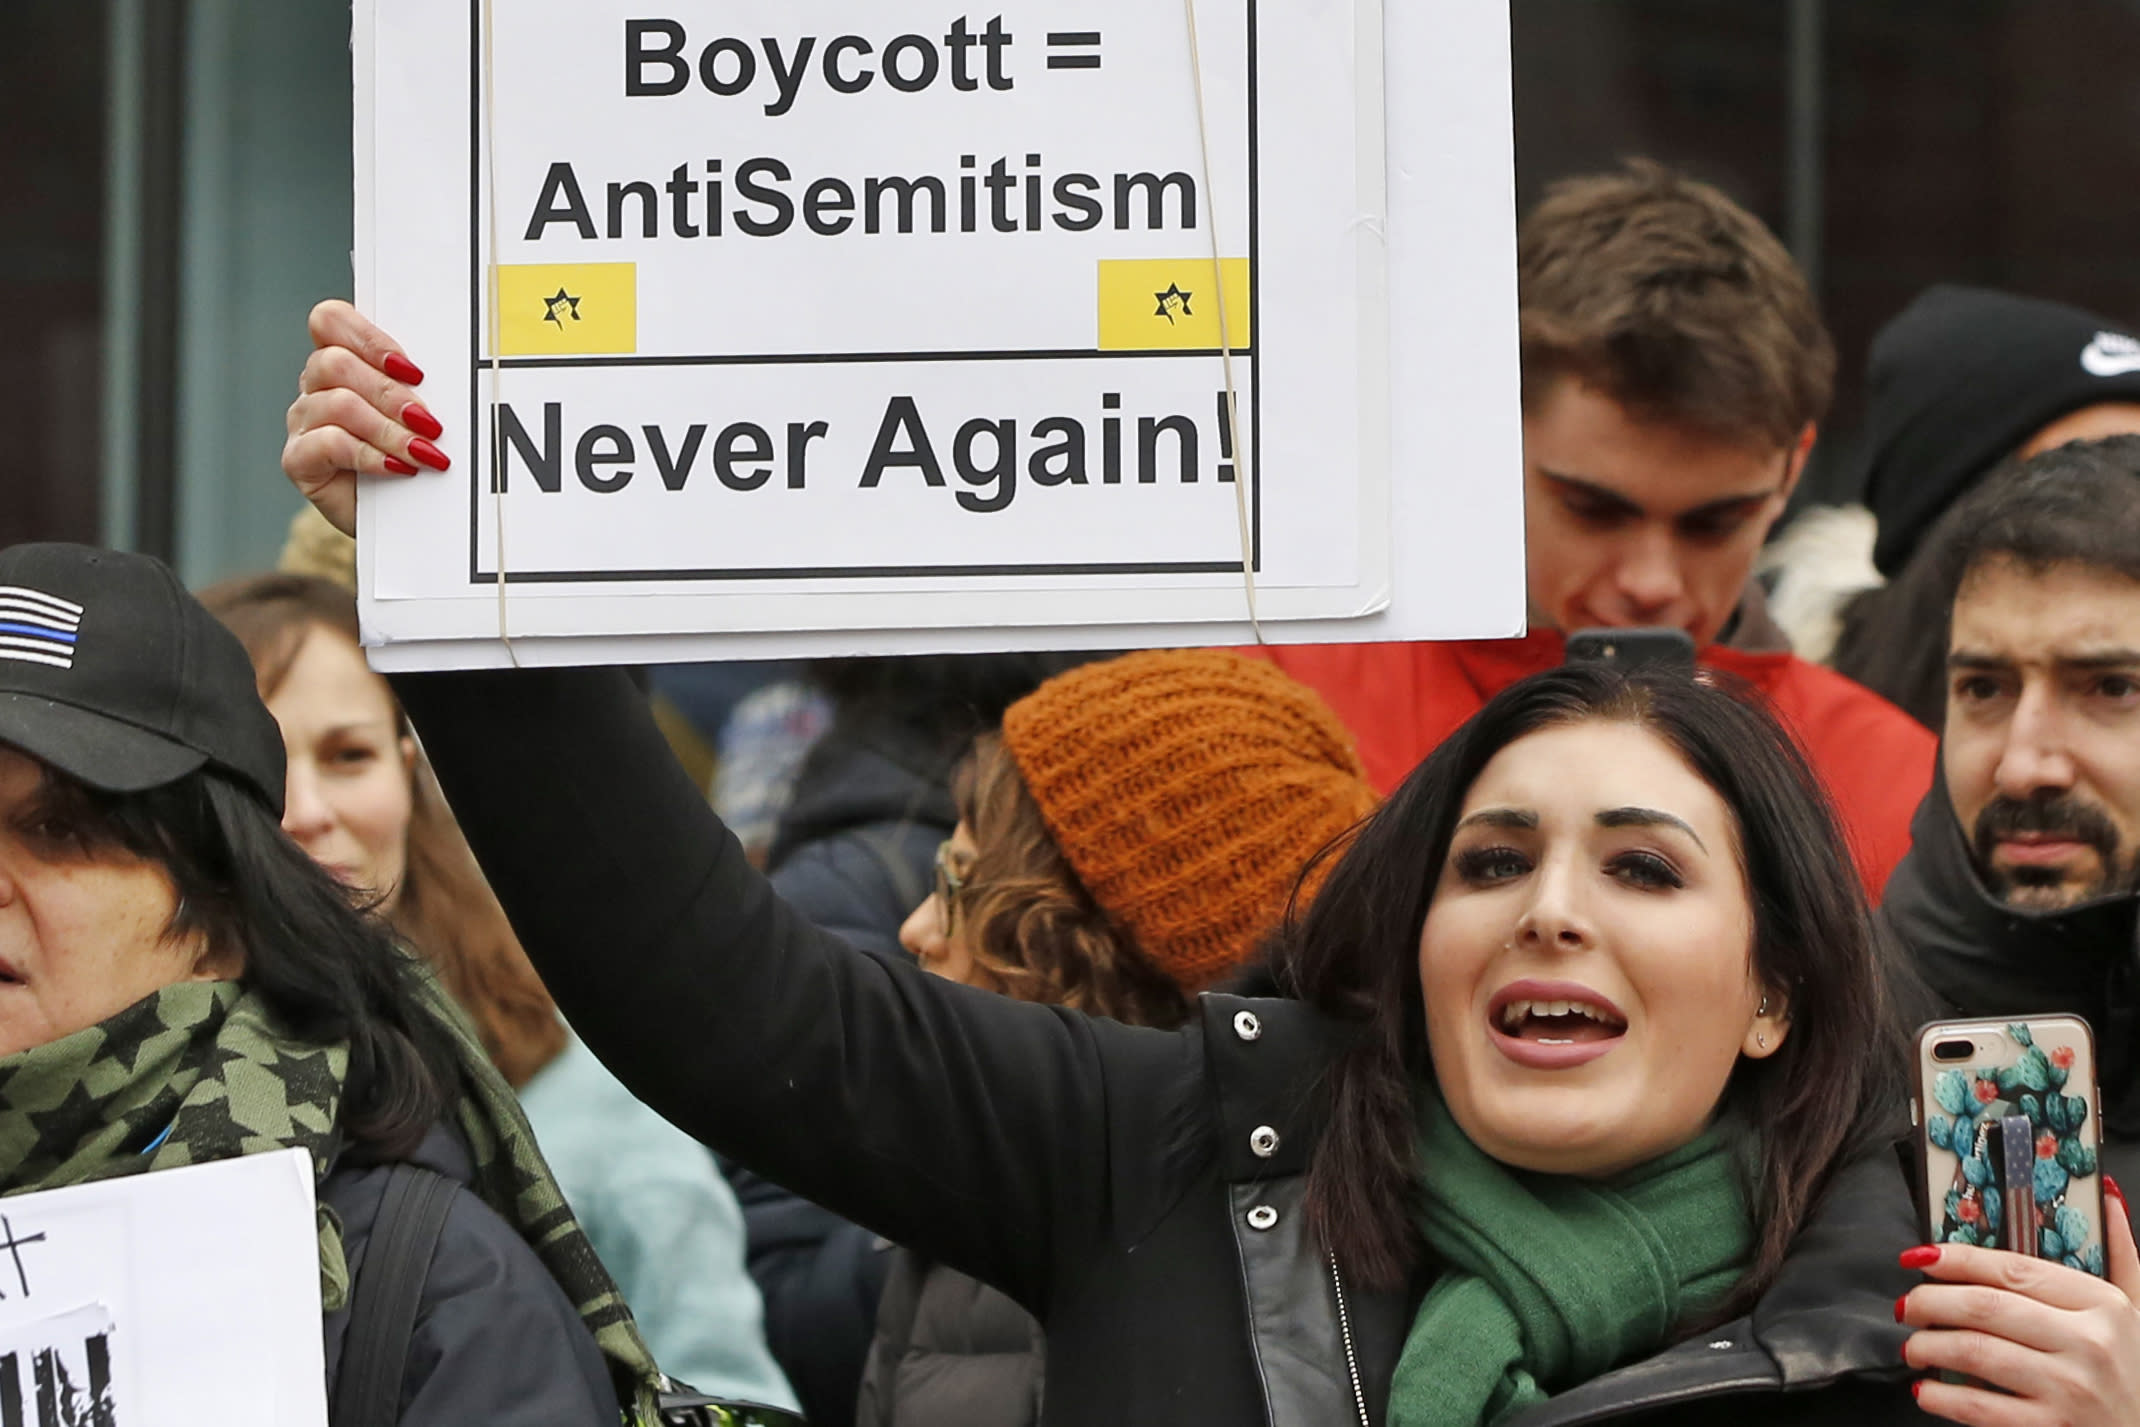 FILE - In this Jan. 19, 2019, file photo, political activist Laura Loomer holds up a sign across the street from a rally organized by Women's March NYC after she barged onto the stage interrupting Women's March NYC director Agunda Okeyo who was speaking during a rally in New York. Loomer, a far-right social media provocateur whose hate speech got her banned from social media won her Republican primary on Tuesday, Aug. 18, 2020, and will challenge Democratic Rep. Lois Frankel for Congress in November. (AP Photo/Kathy Willens, File)